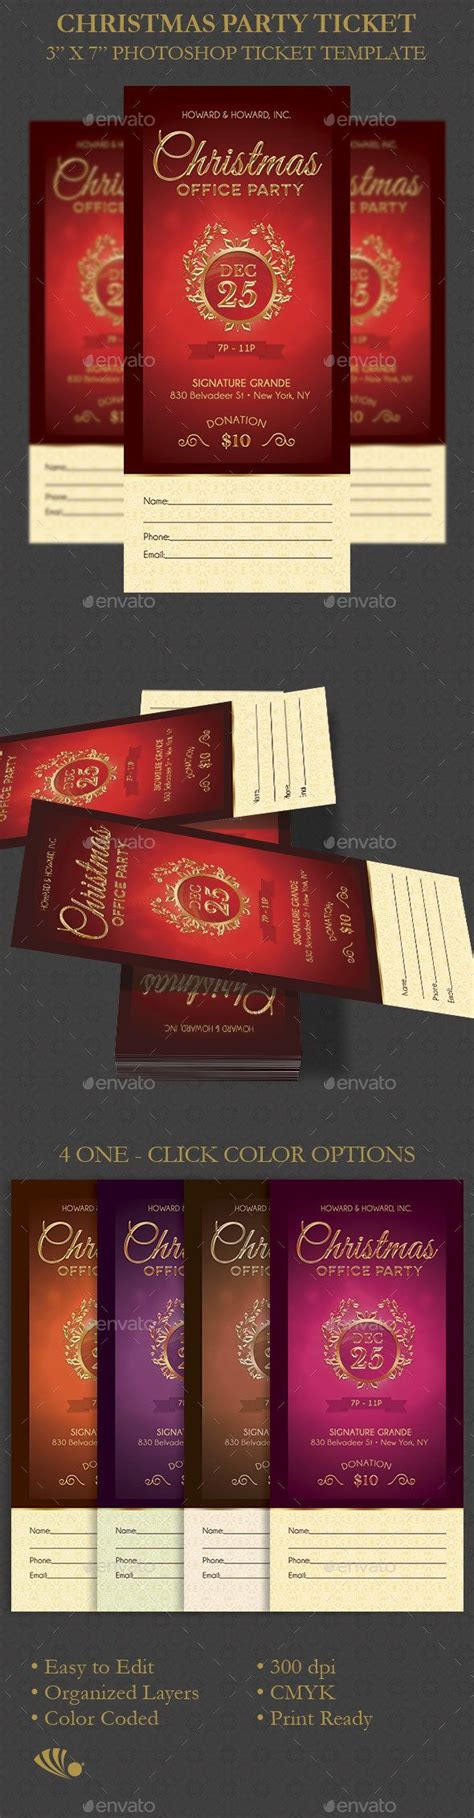 christmas party ticket template ticket template photoshop and